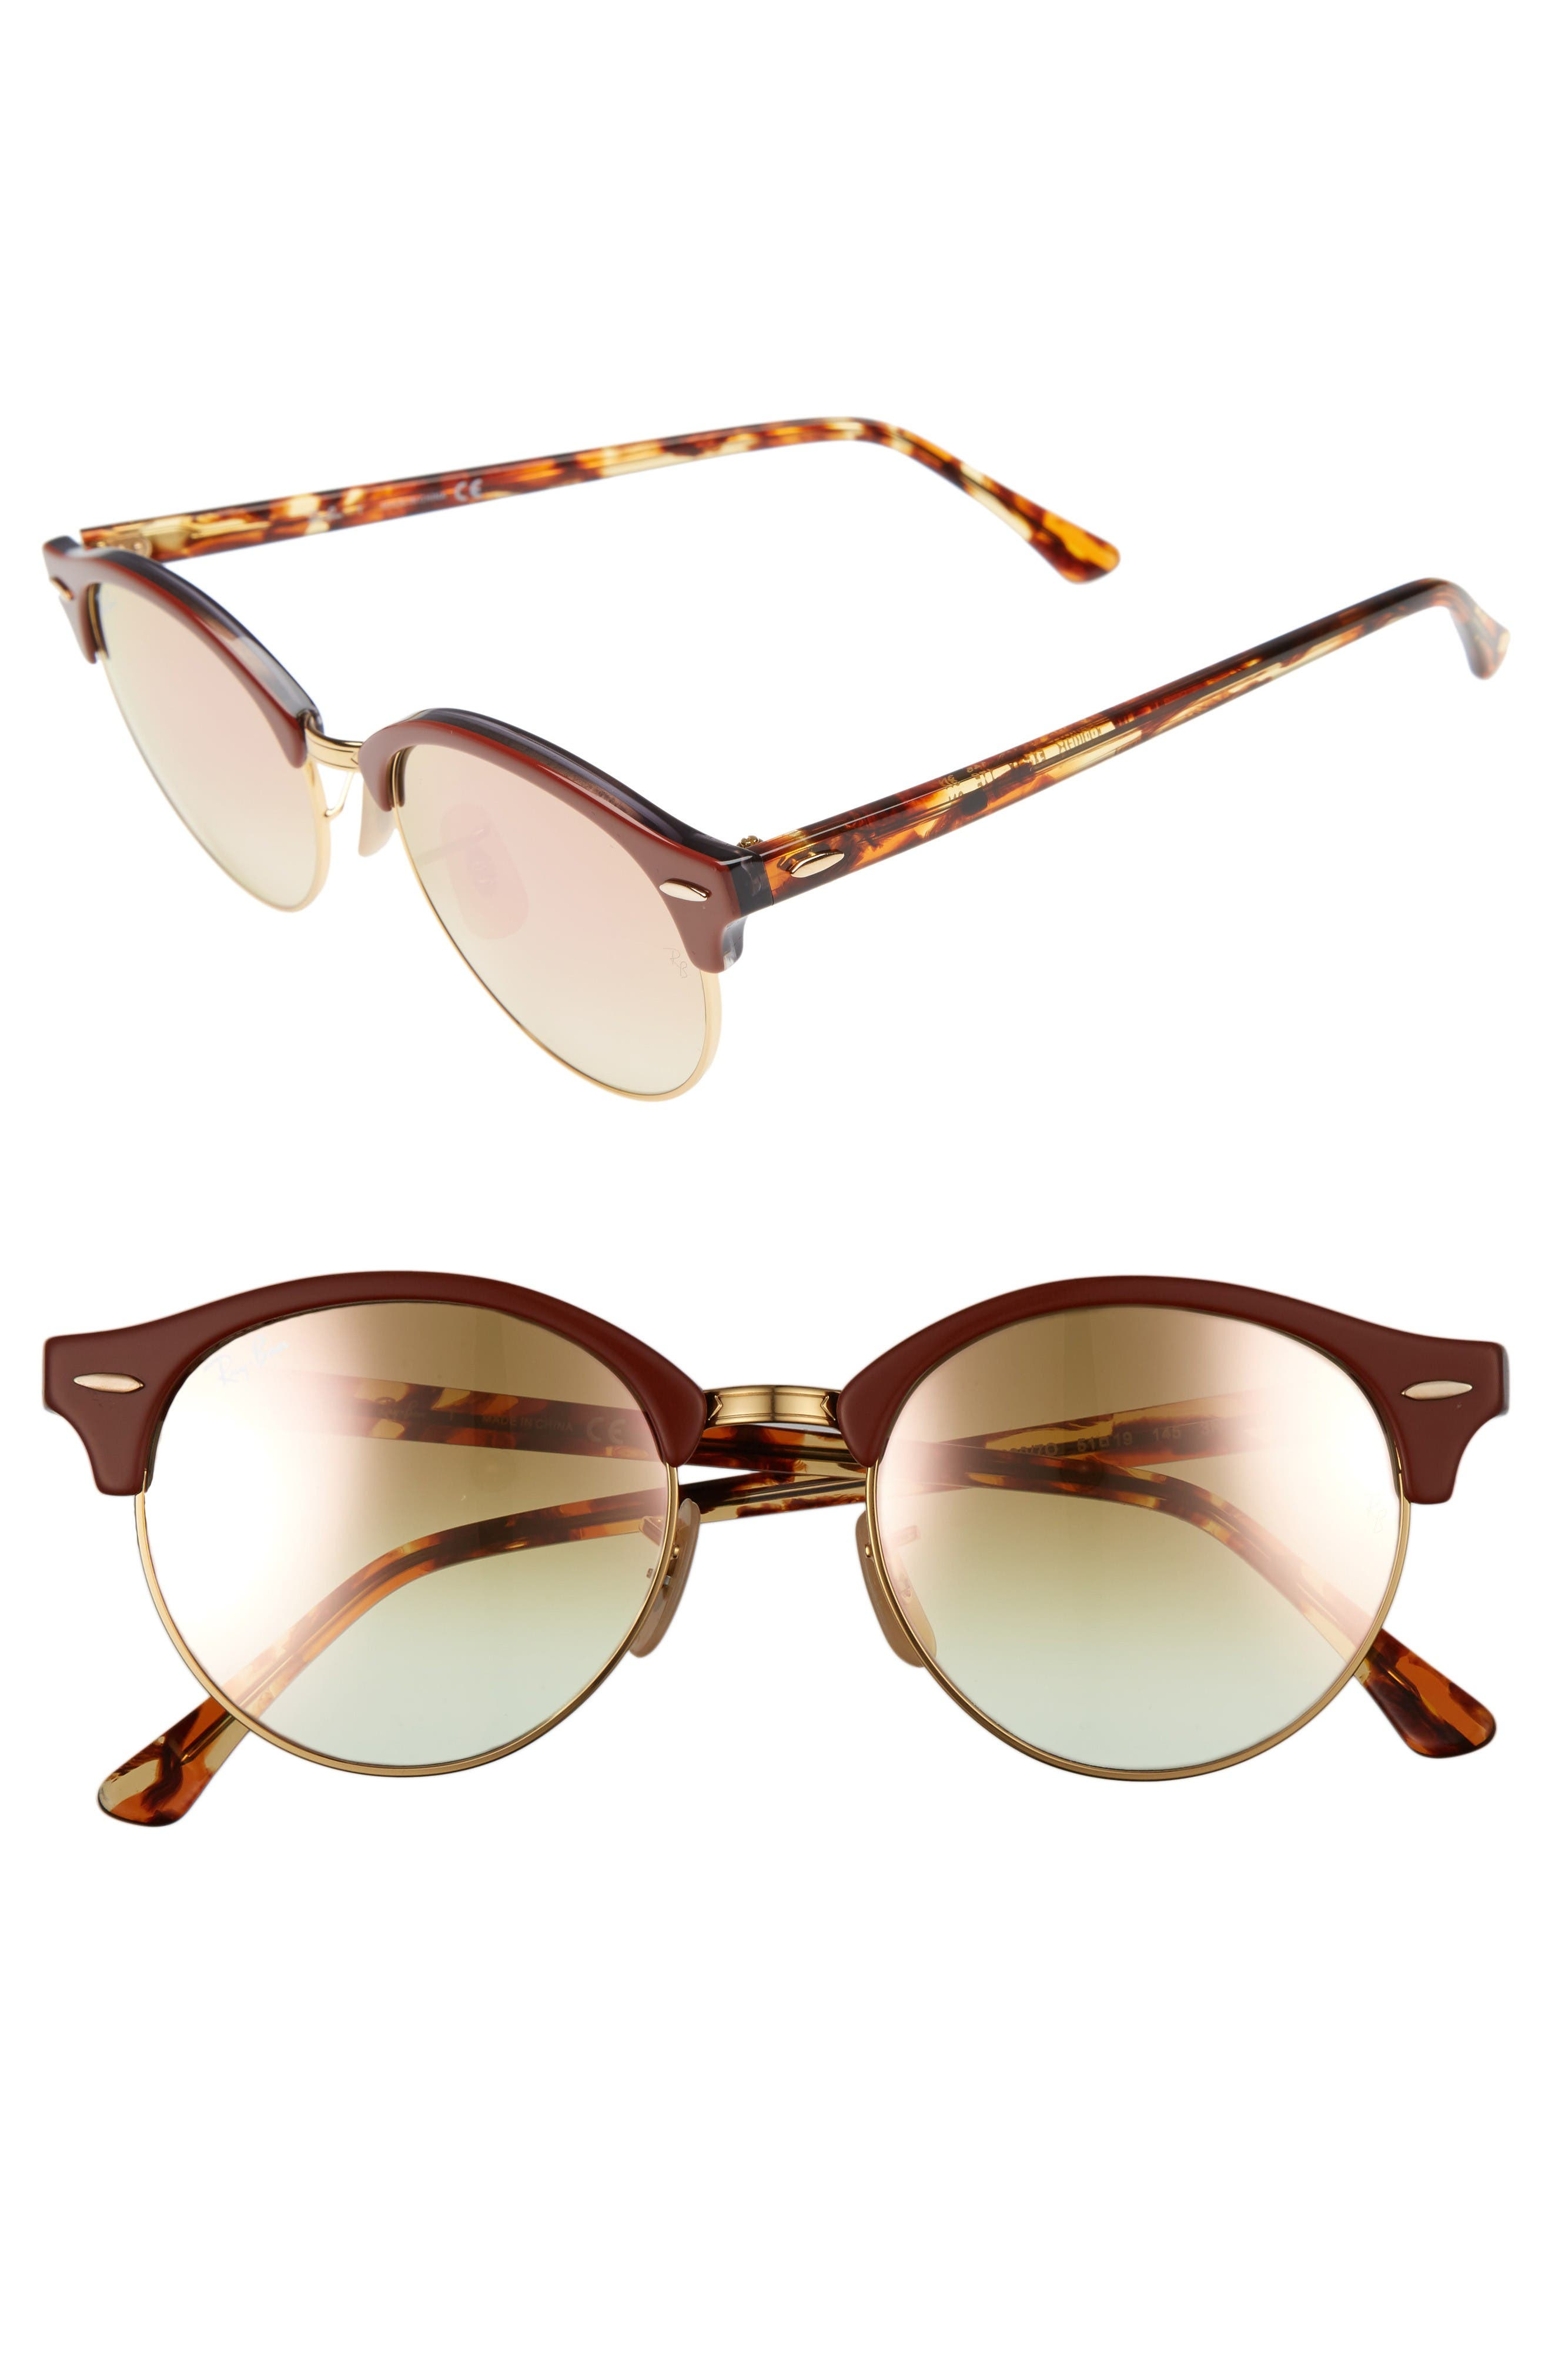 Clubround 51mm Round Sunglasses,                         Main,                         color, Gold